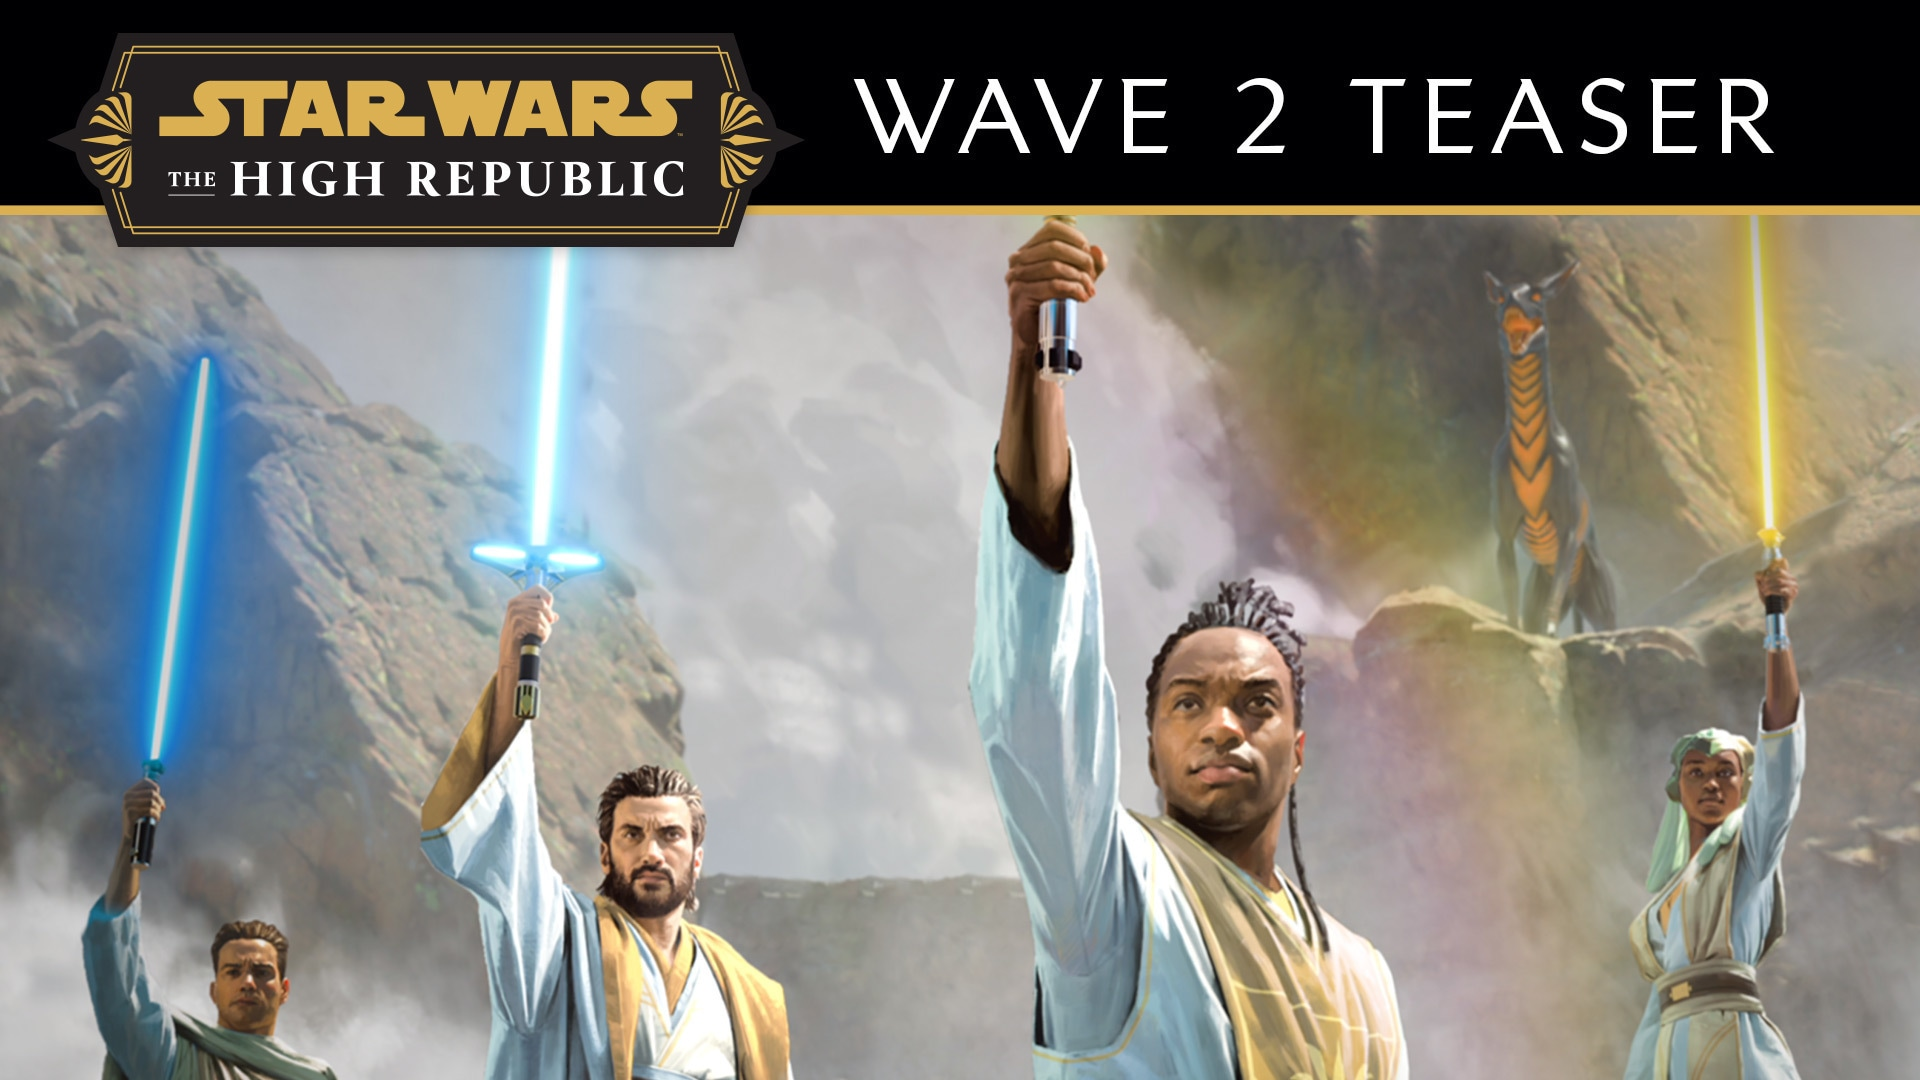 The Adventure Continues - Star Wars: The High Republic